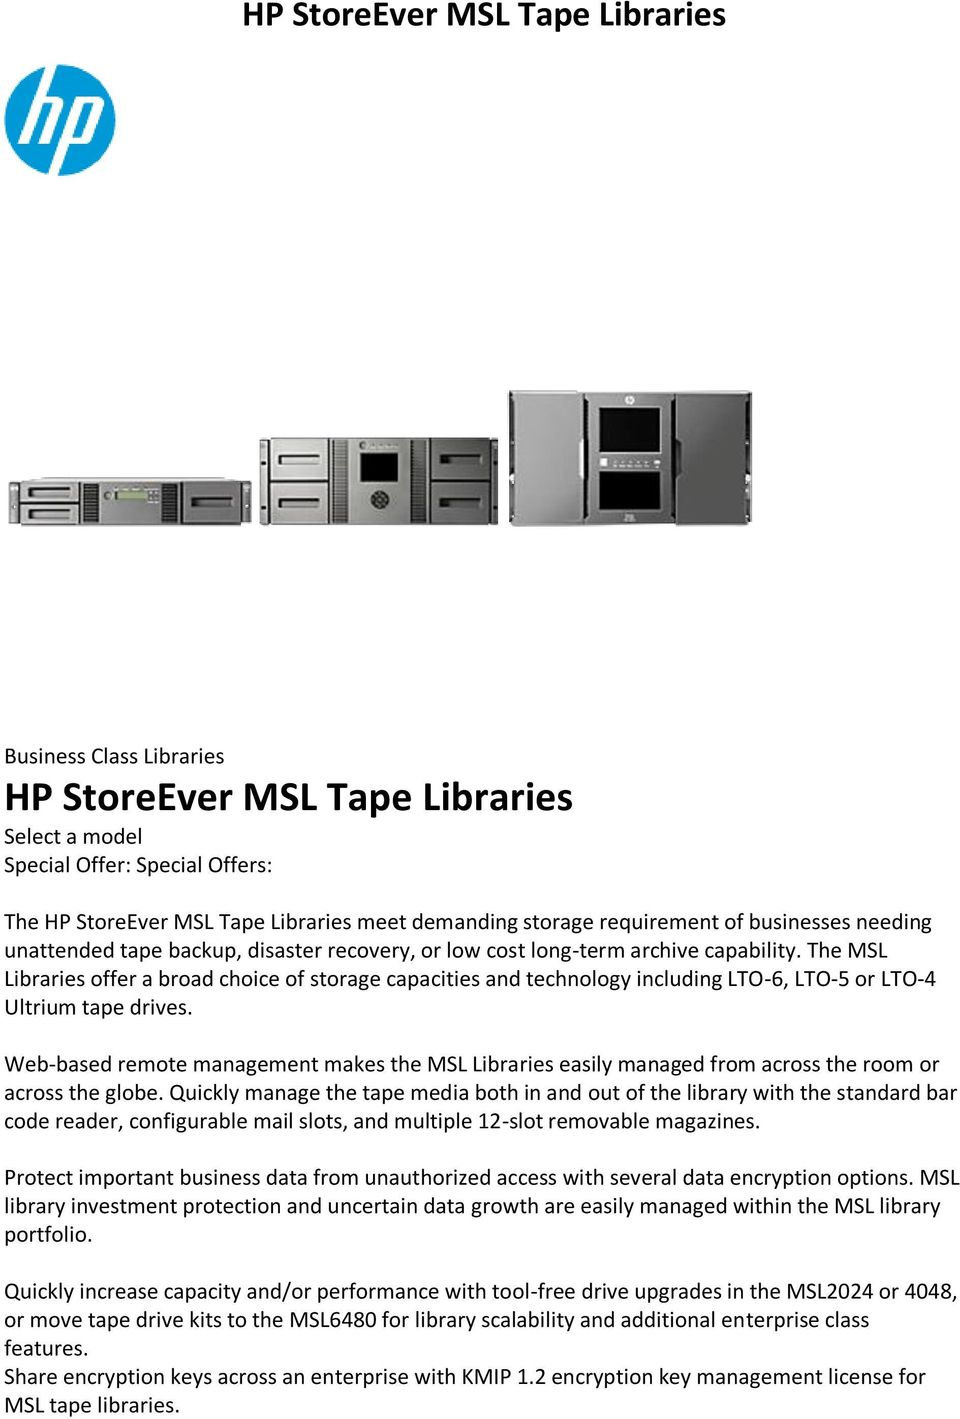 The MSL Libraries offer a broad choice of storage capacities and technology including LTO-6, LTO-5 or LTO-4 Ultrium tape drives.